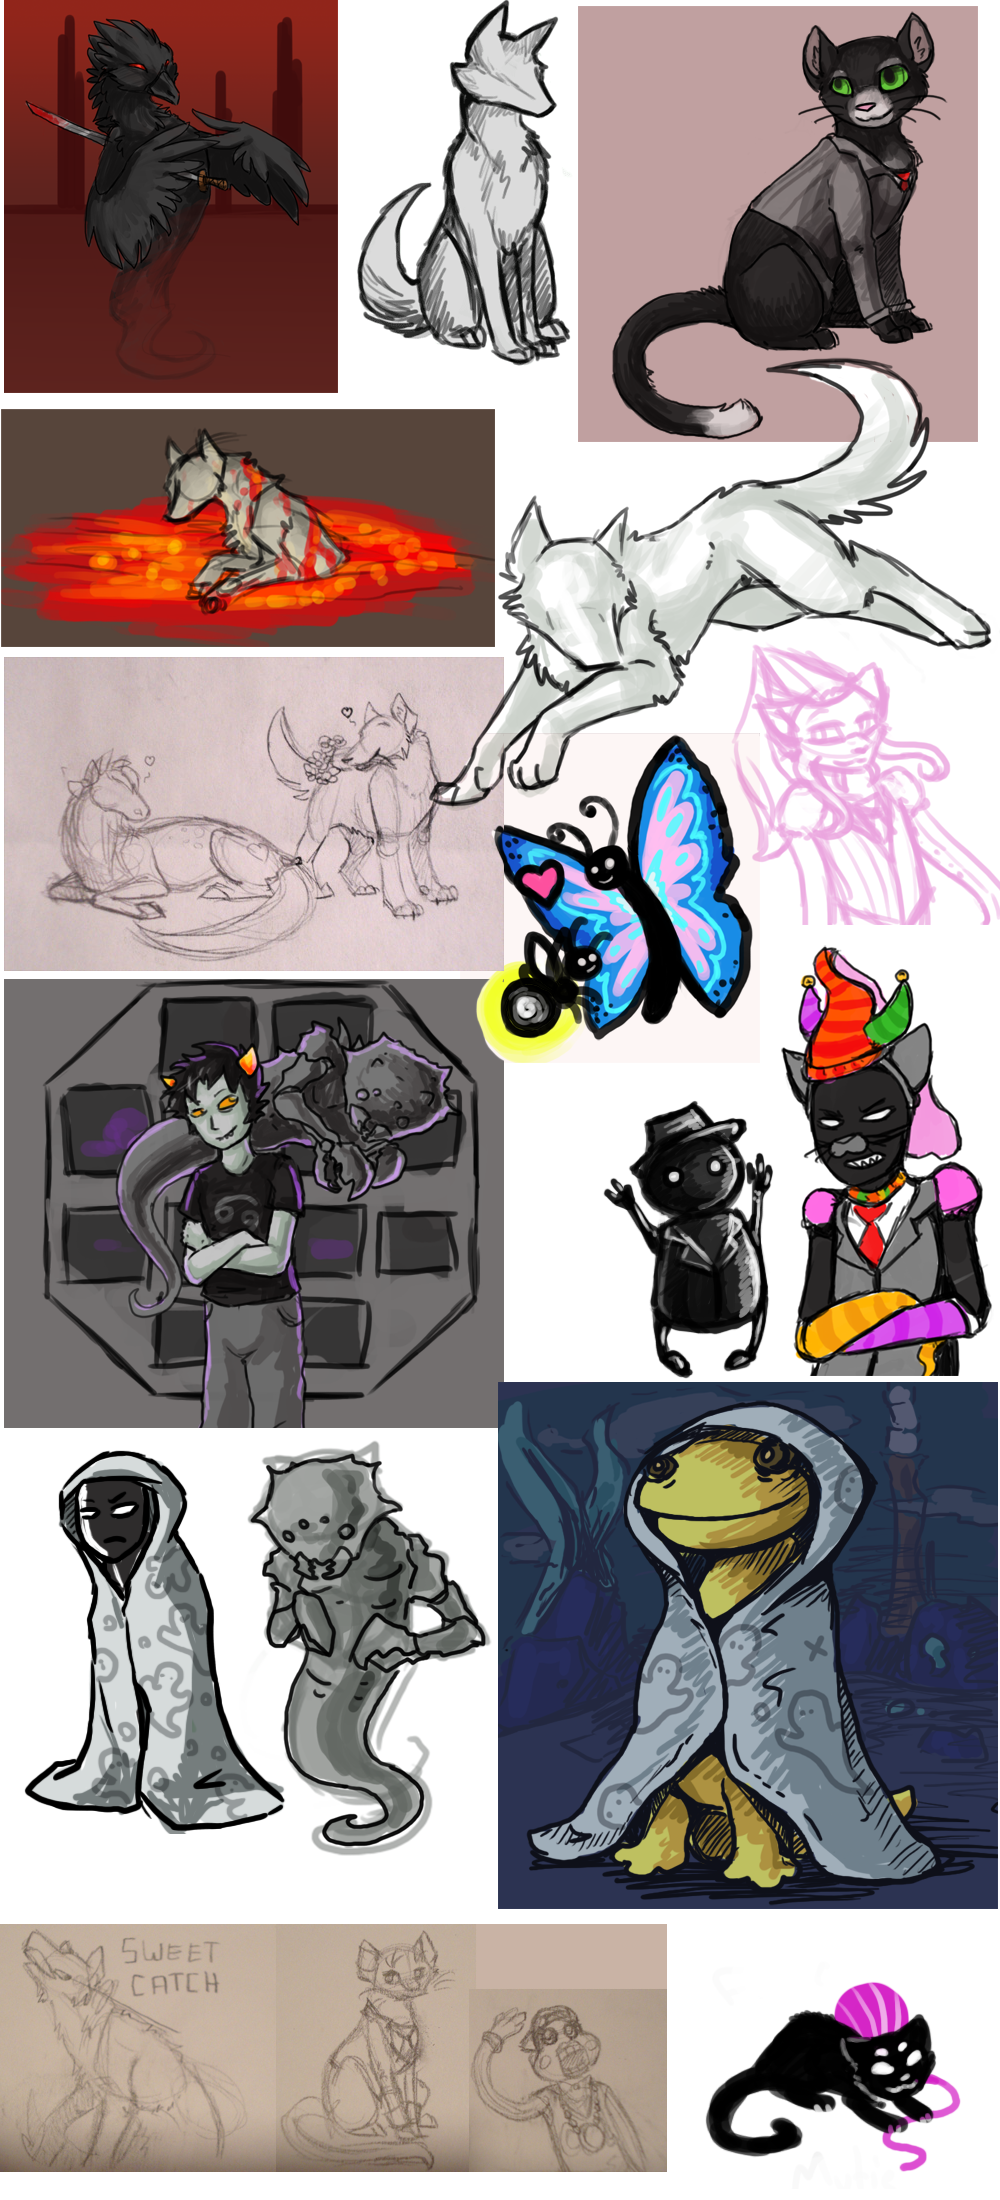 akrona animal_ears archagent arms_crossed art_dump becquerel blood butterfly cd city clubs_deuce consorts crabdad crabdadsprite flowers heart impalement jack_noir jaspers jaspersprite karkat_vantas katana land_of_wind_and_shade lil_cal lusus maplehoof redrom salamanders secret_wizard seppucrow serenity shipping smiling_karkat spades_slick sprite vodka_mutini yarn